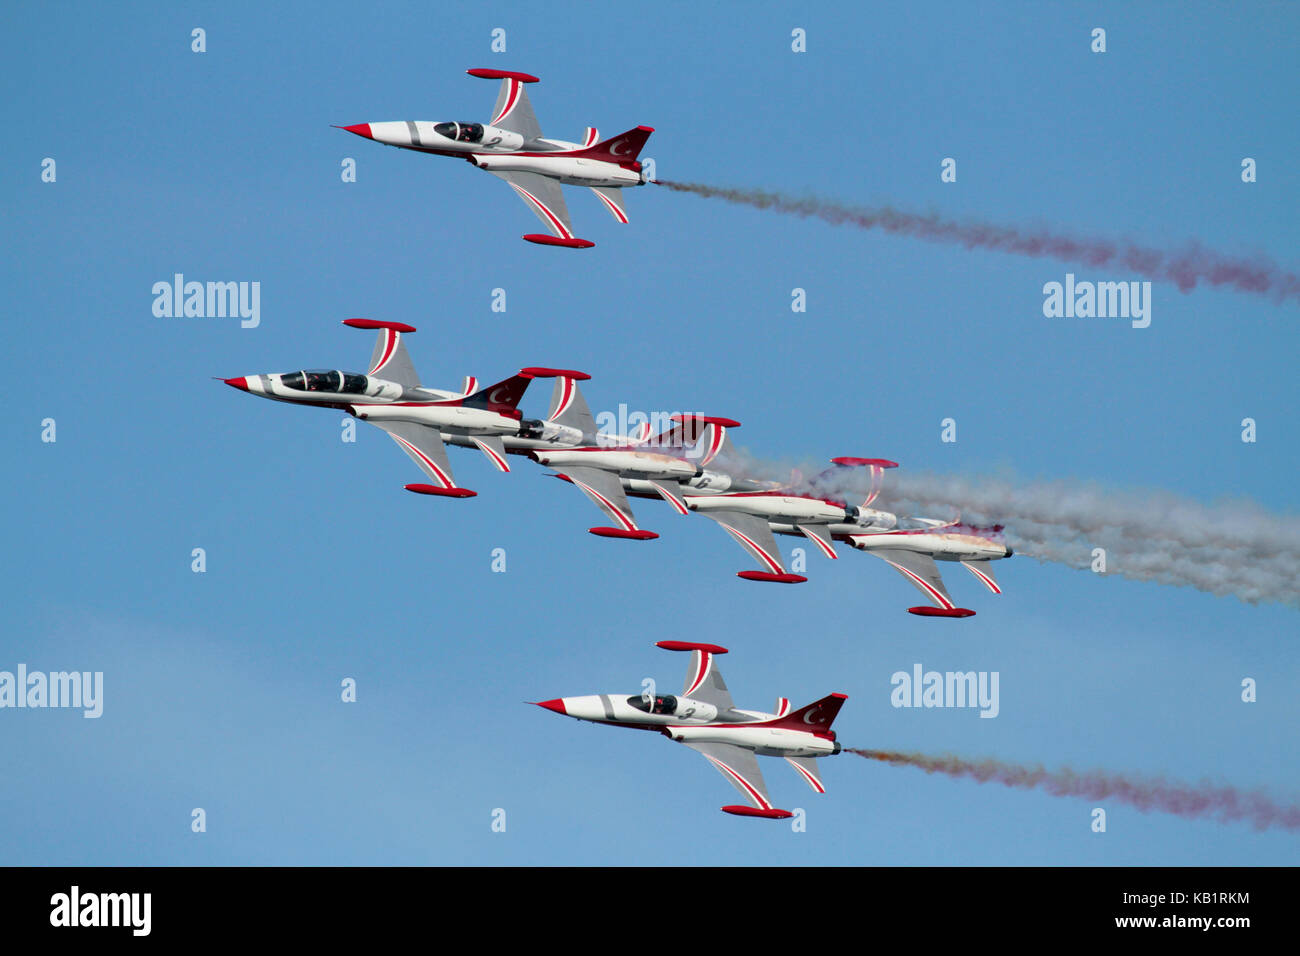 The Turkish Stars aerobatic display team flying their NF-5 combat jets in close formation - Stock Image